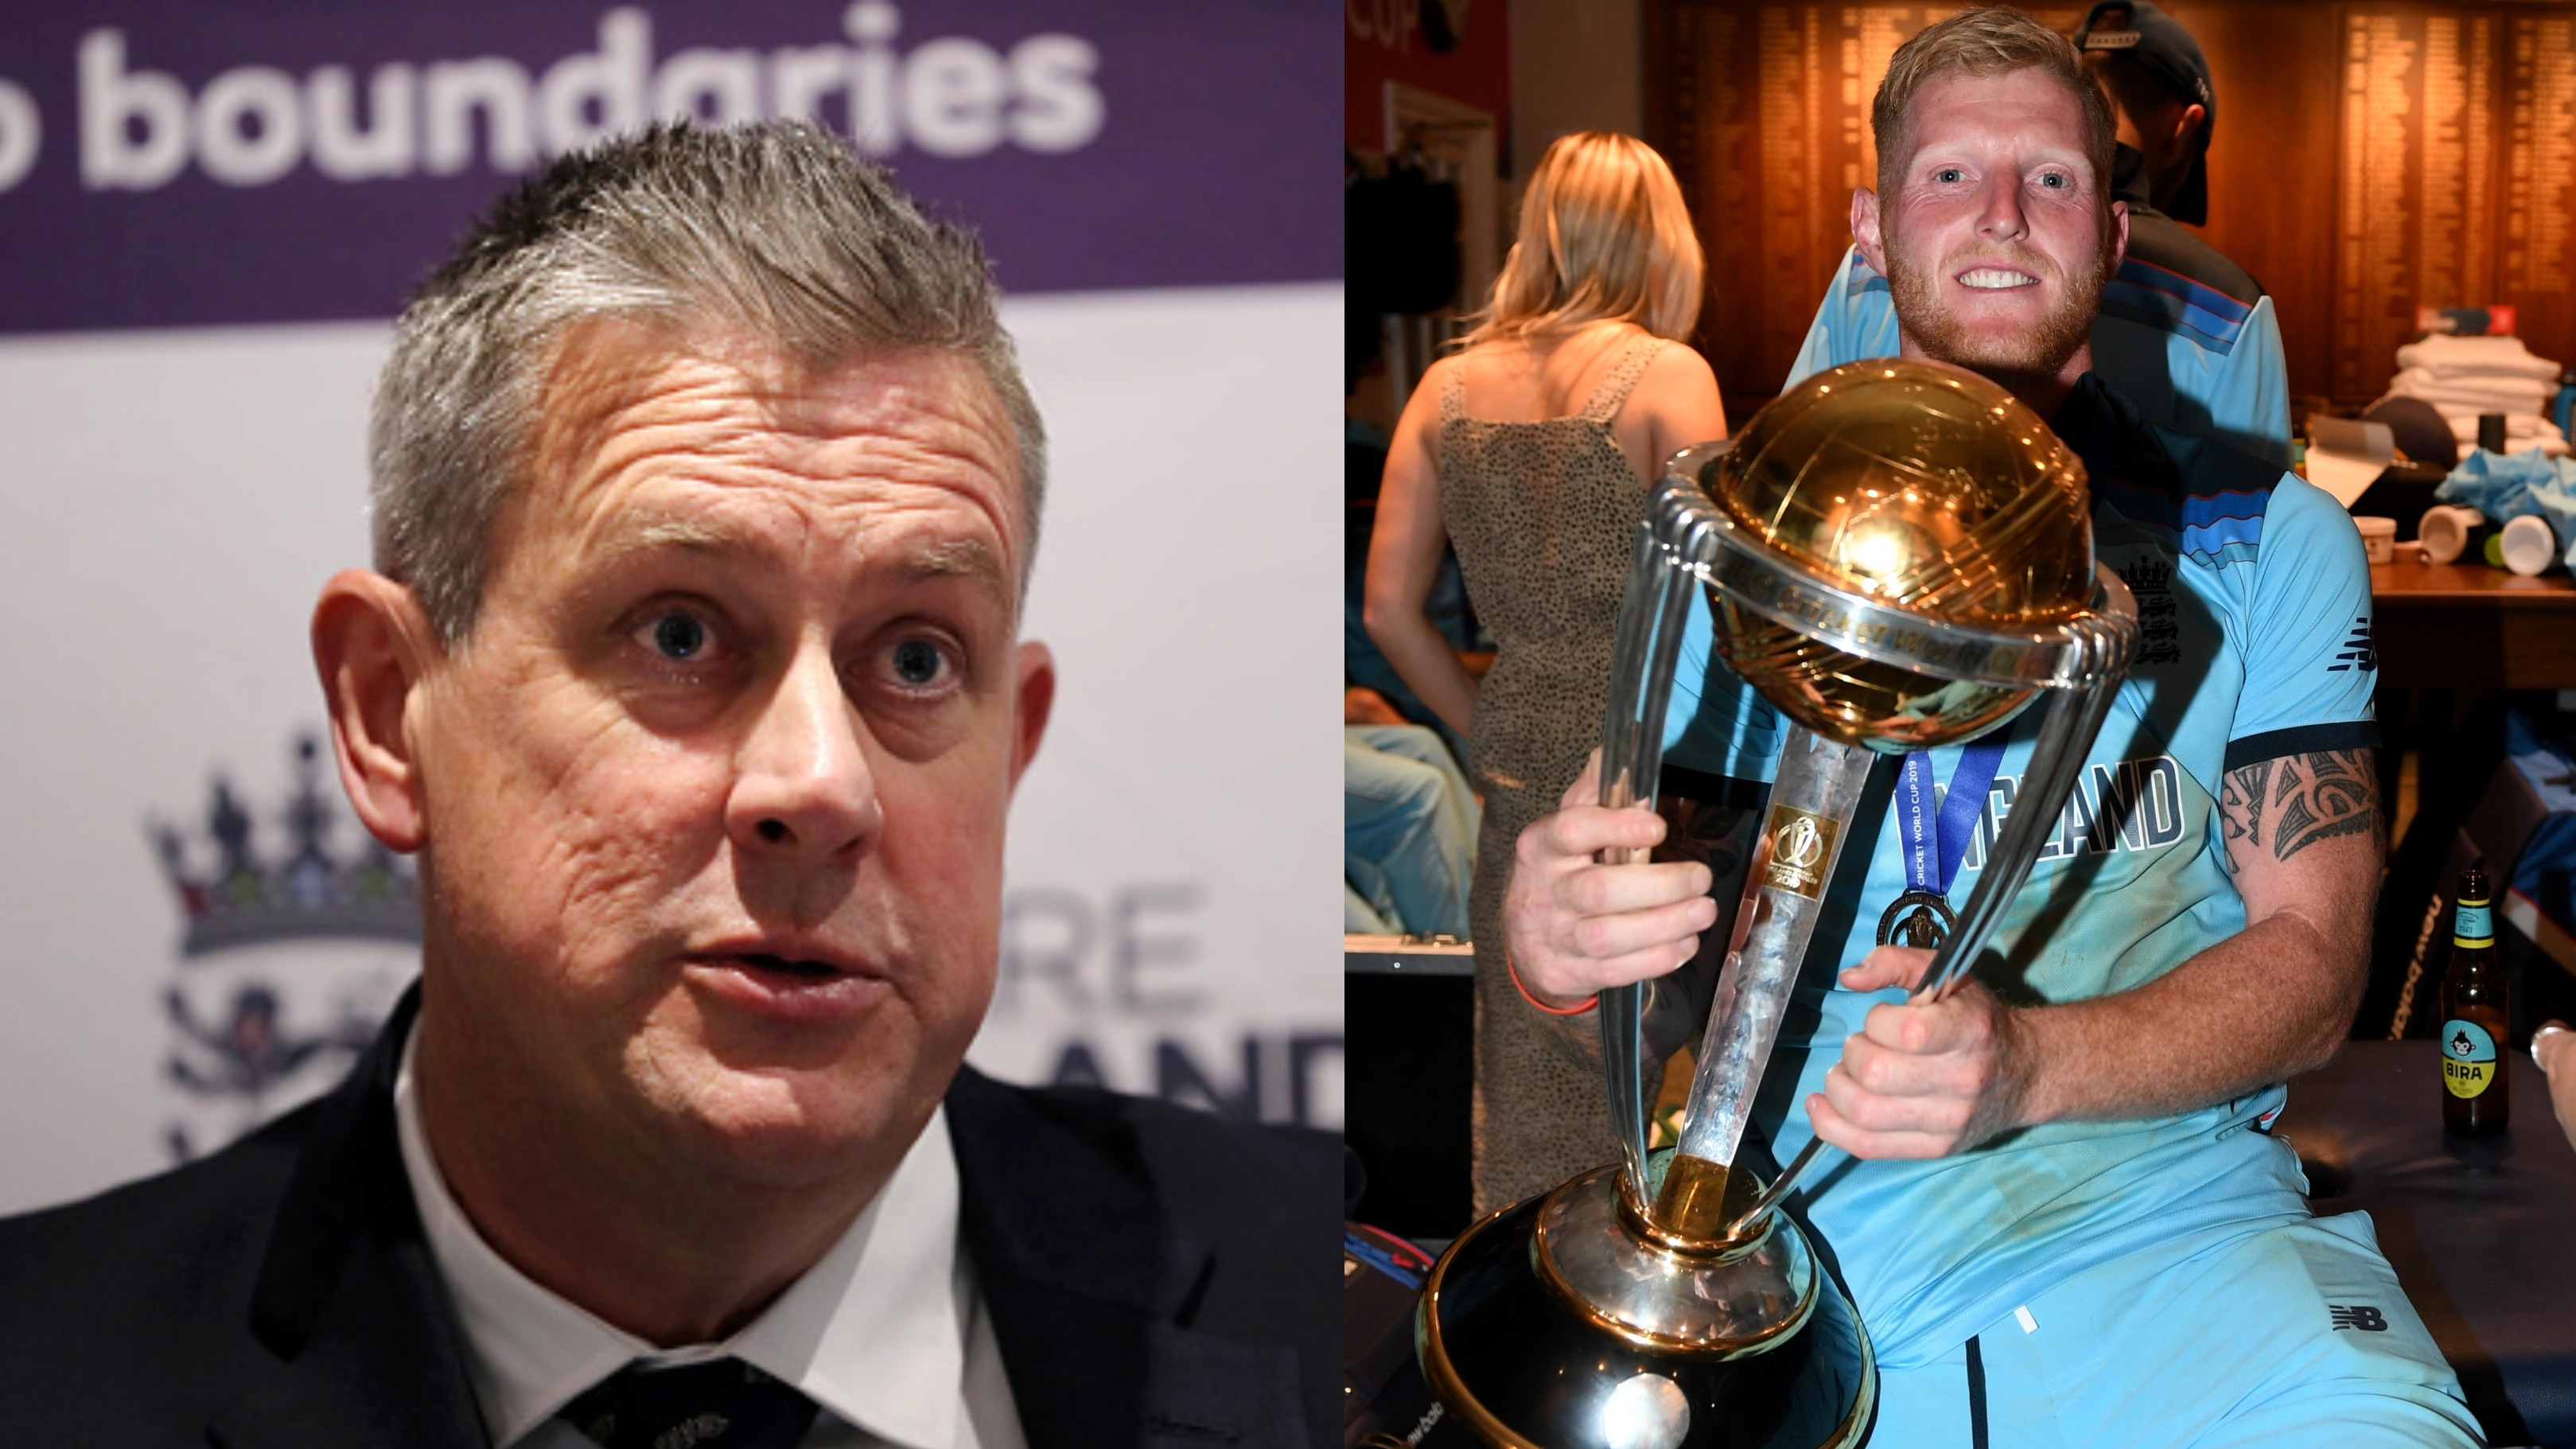 Ben Stokes' bigger profile has made him a target by media, says ECB director Ashley Giles